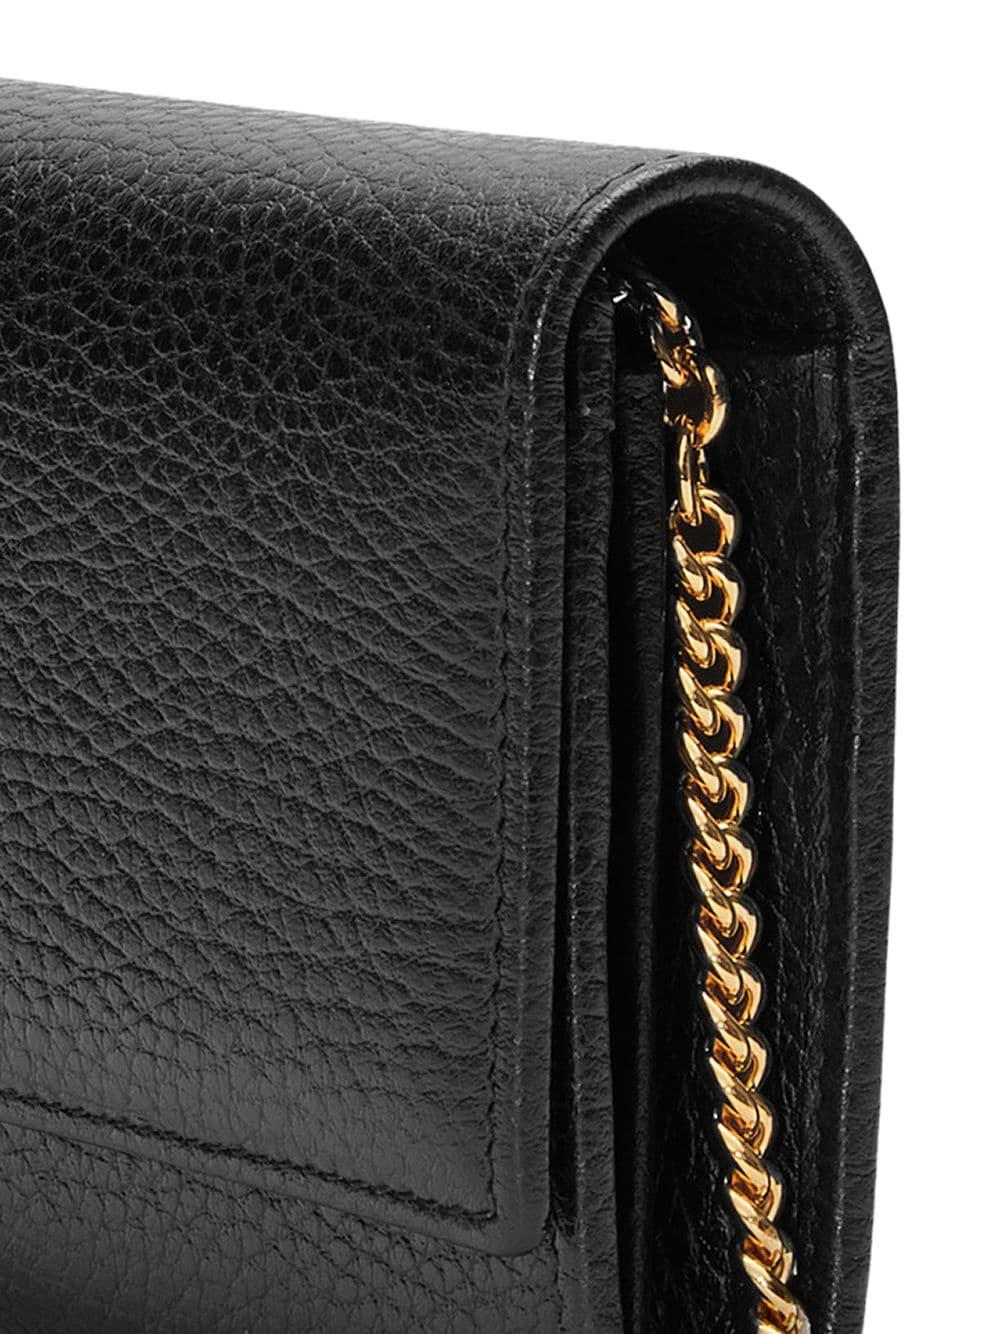 9980a6f244a11e Gucci - Black GG Marmont Leather Chain Wallet - Lyst. View fullscreen